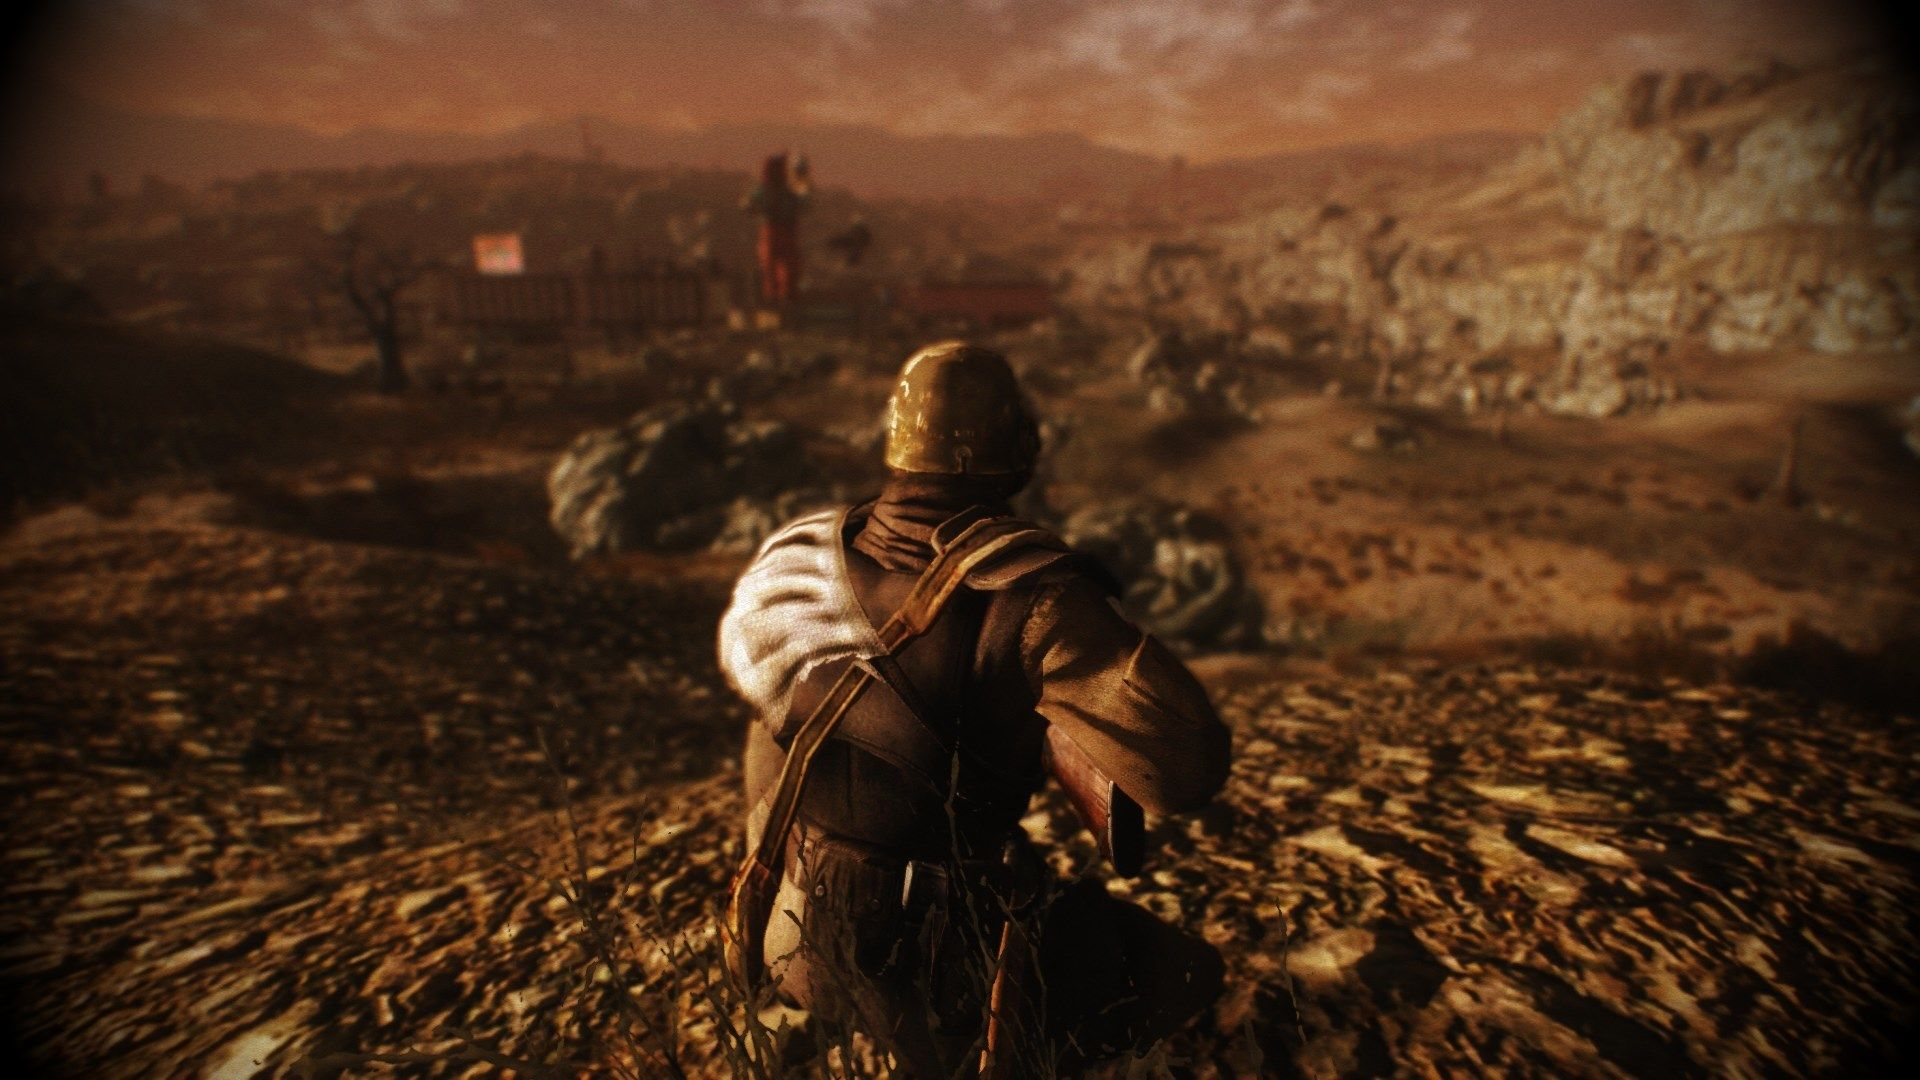 ridge jones - hd widescreen fallout new vegas wallpaper - 1920x1080